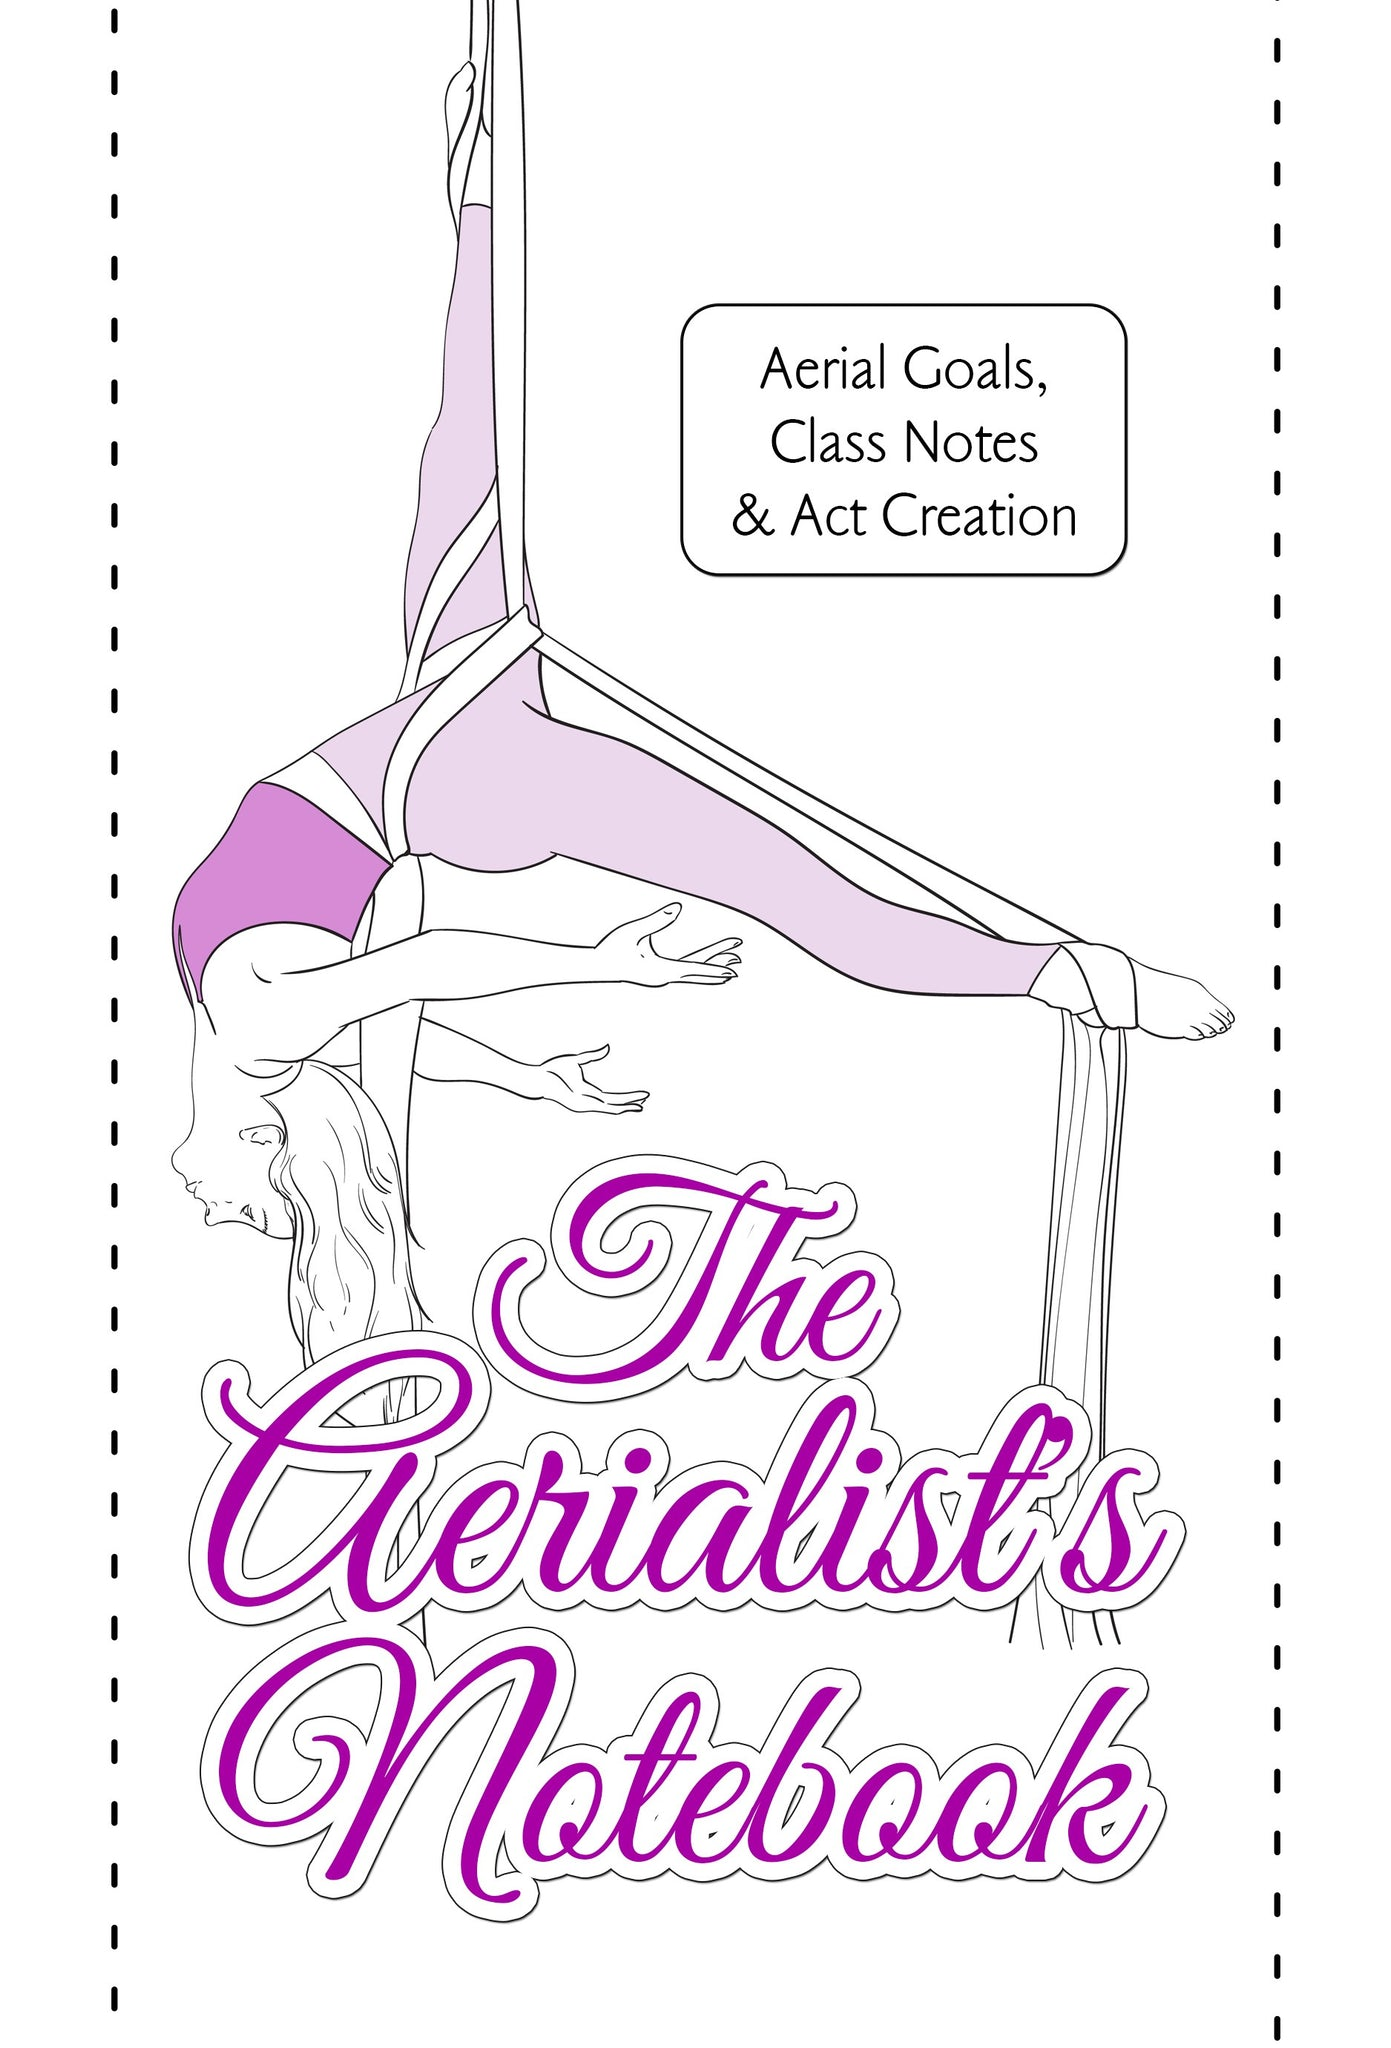 The Aerialist's Notebook - Digital Download